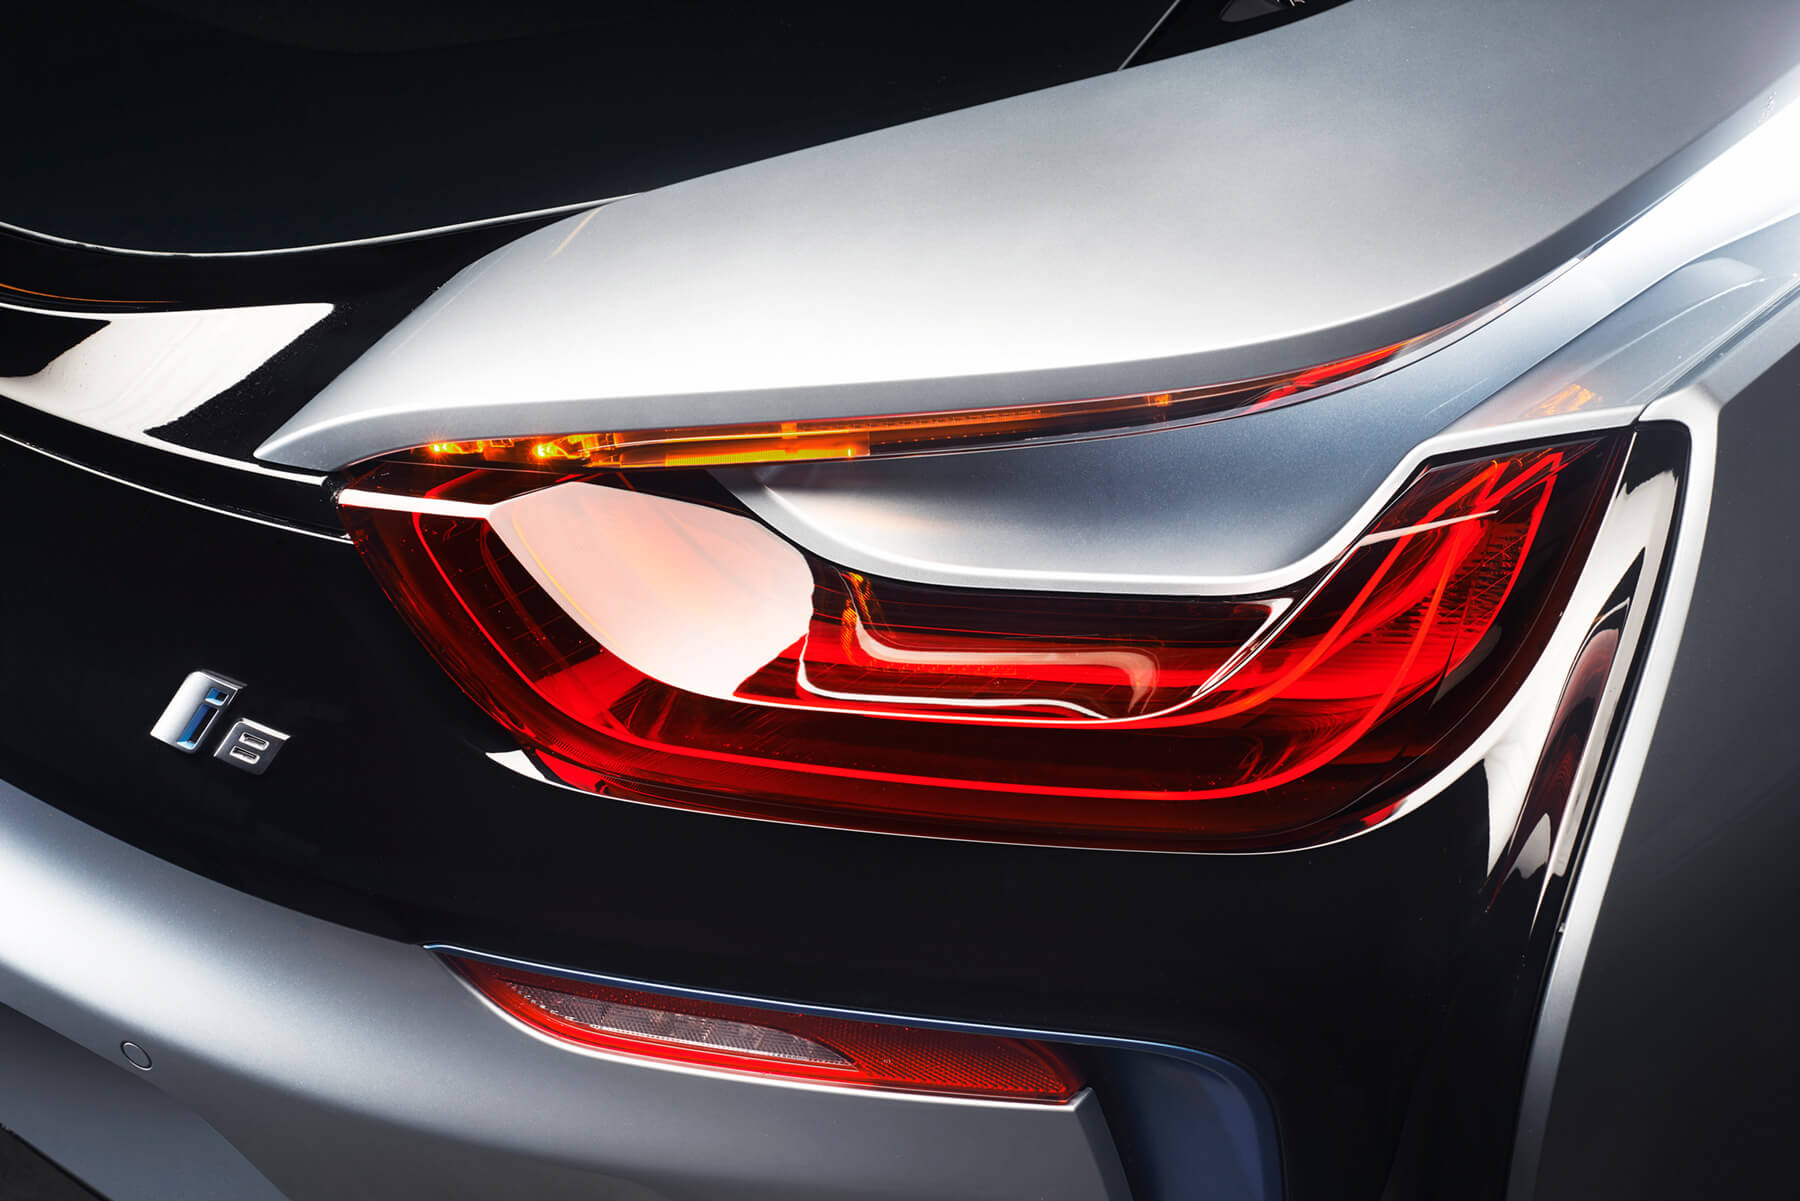 BMW i8 rear lights